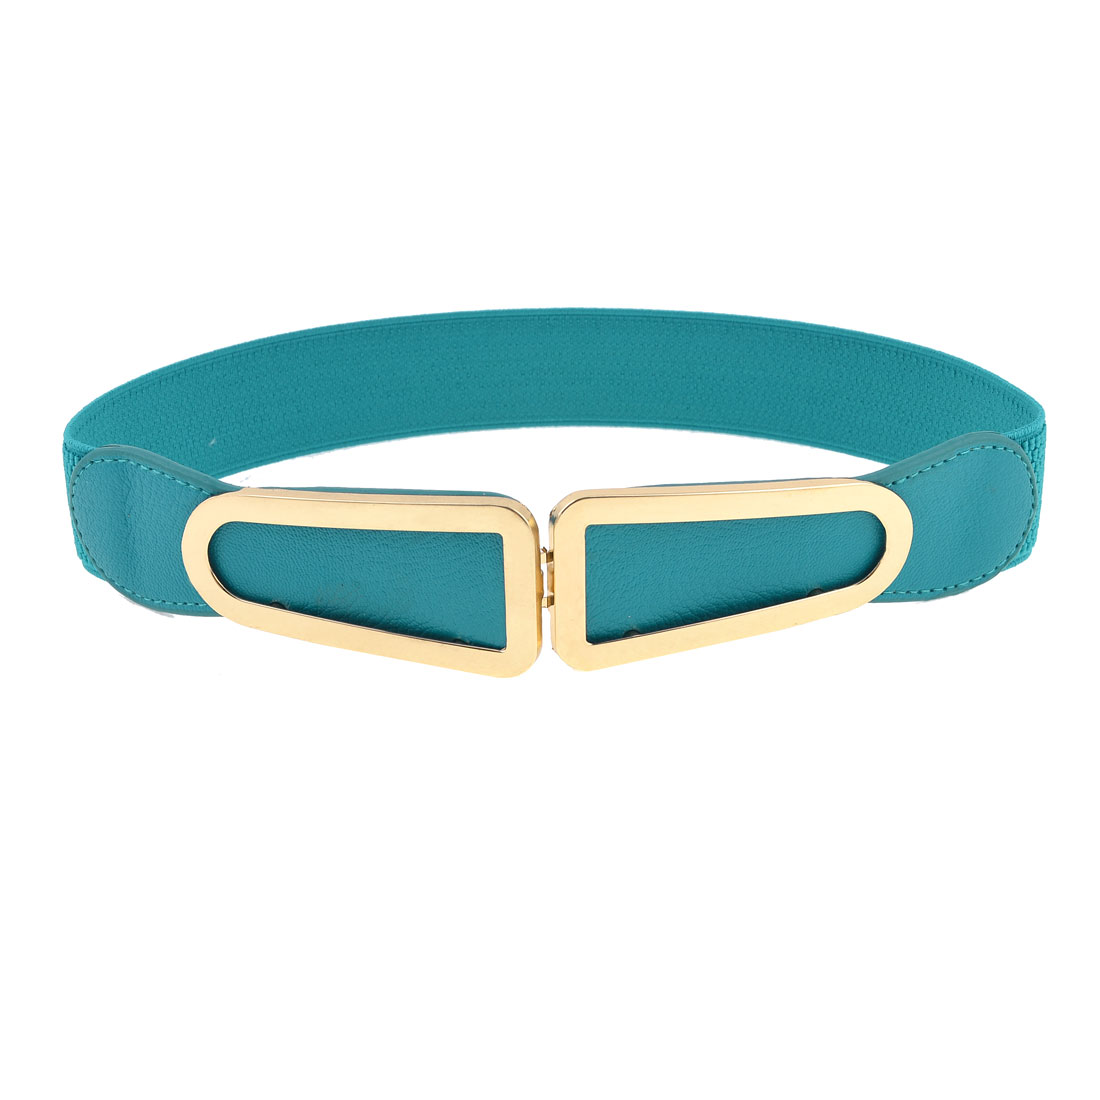 Blue Band Faux Leather Copper Tone Metal Buckle Cinch Belt for Ladies